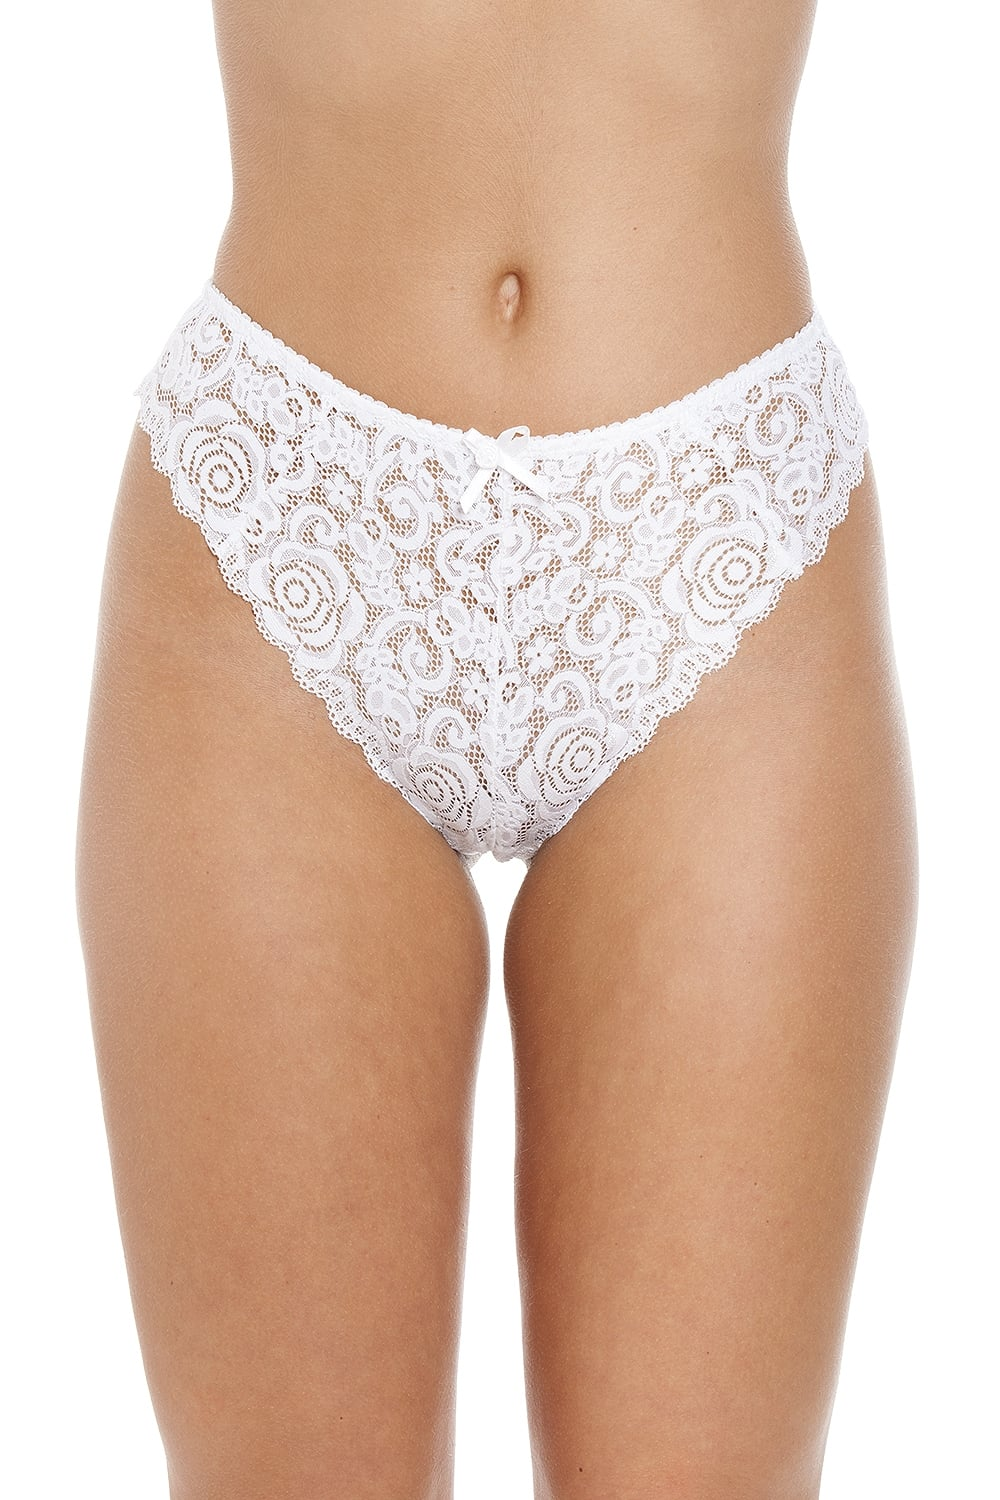 554e026fda0d New Ladies Camille Lingerie White Floral Embroidery Melody Lace ...